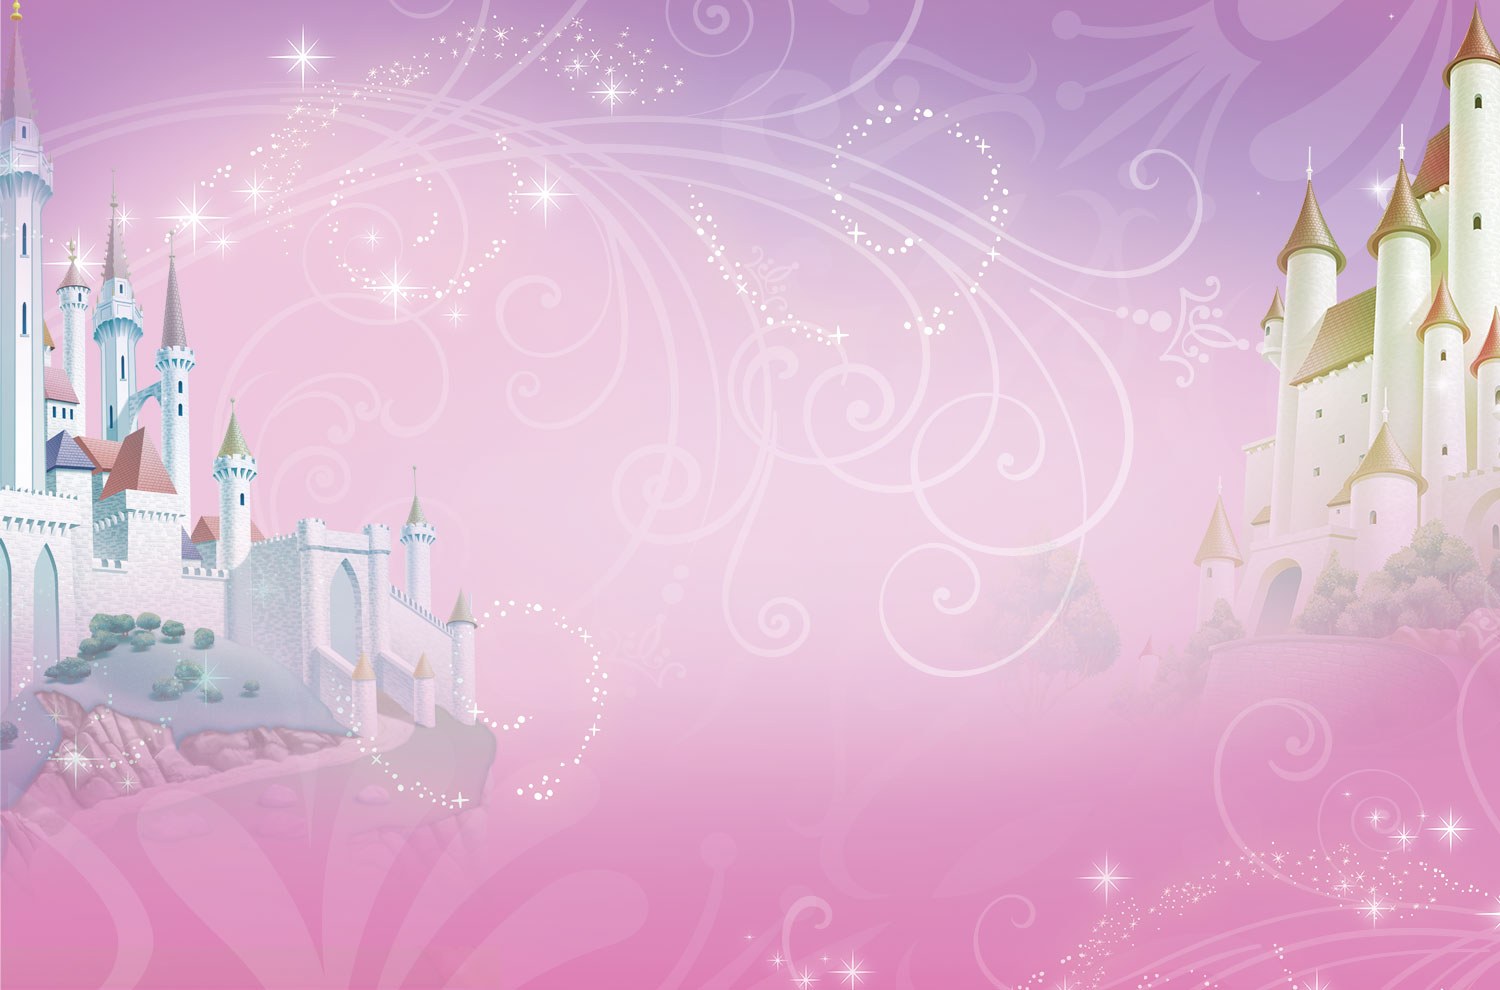 Disney com princess castle backgrounds disney princesses html code - Disney Games Online Games For Kids Disney Games Disney Uk